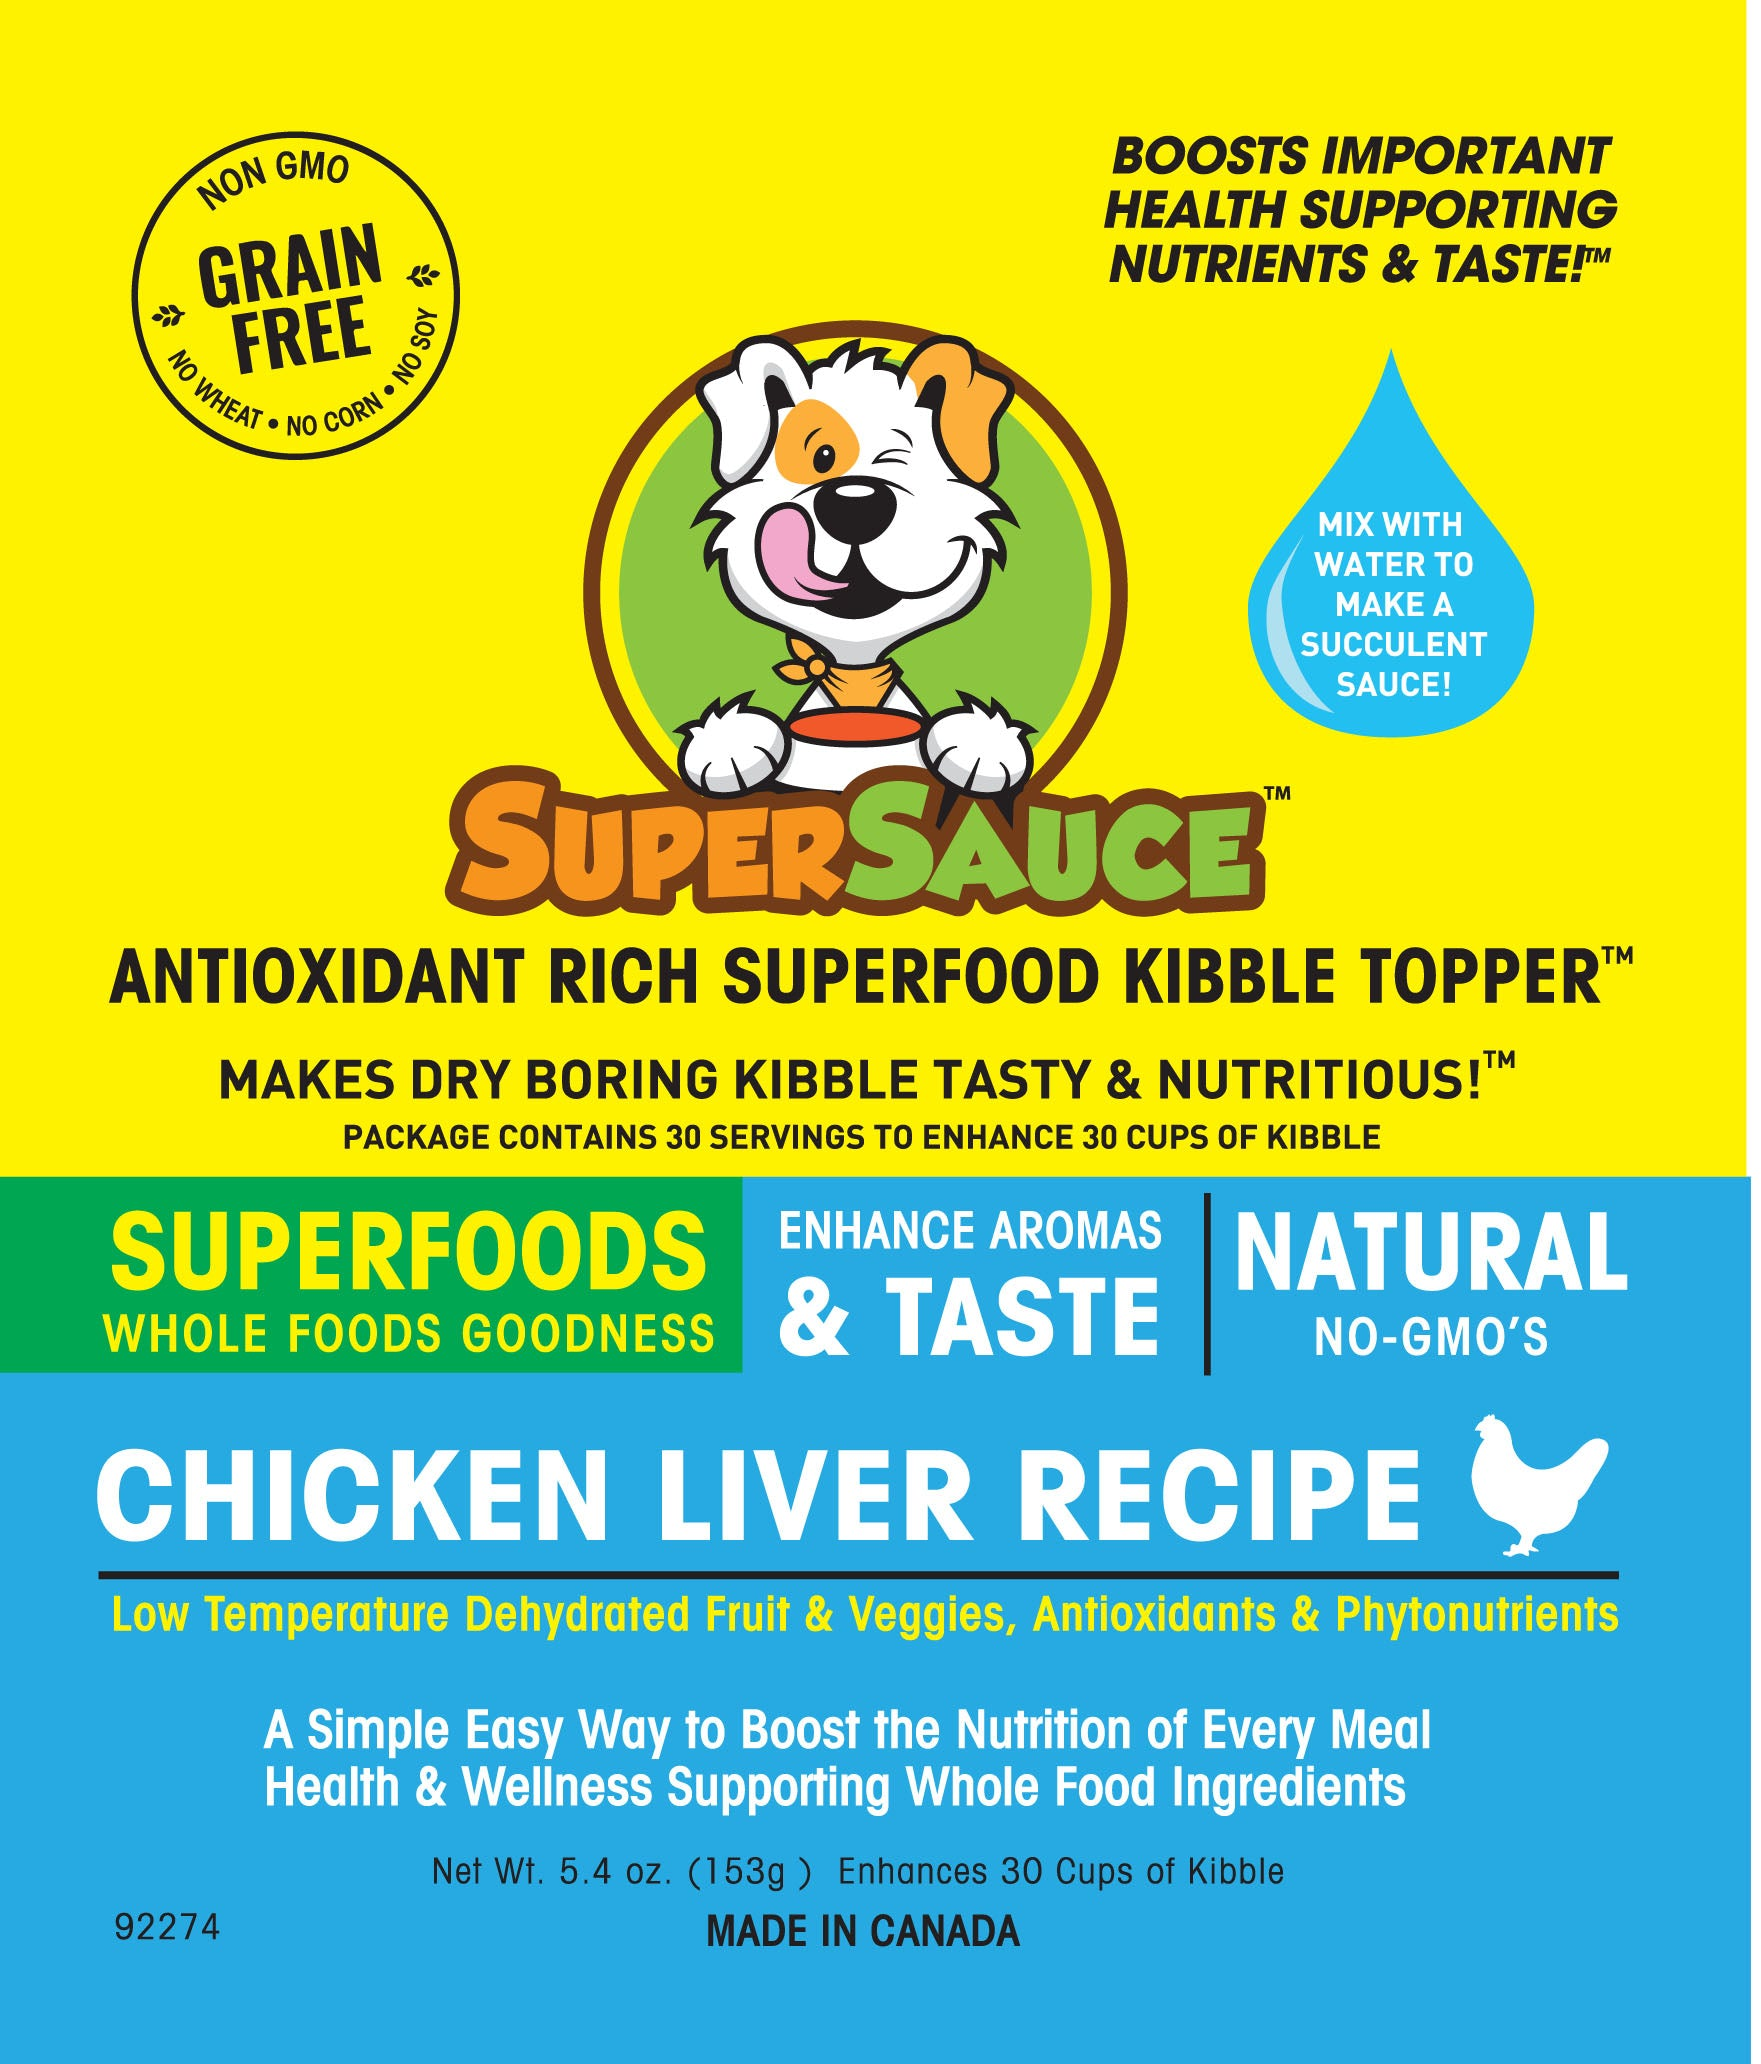 SUPERSAUCE™ Chicken Liver + SUPERFOODS 5.4 oz. (153g) MADE IN CANADA				New Product - Please enter name here